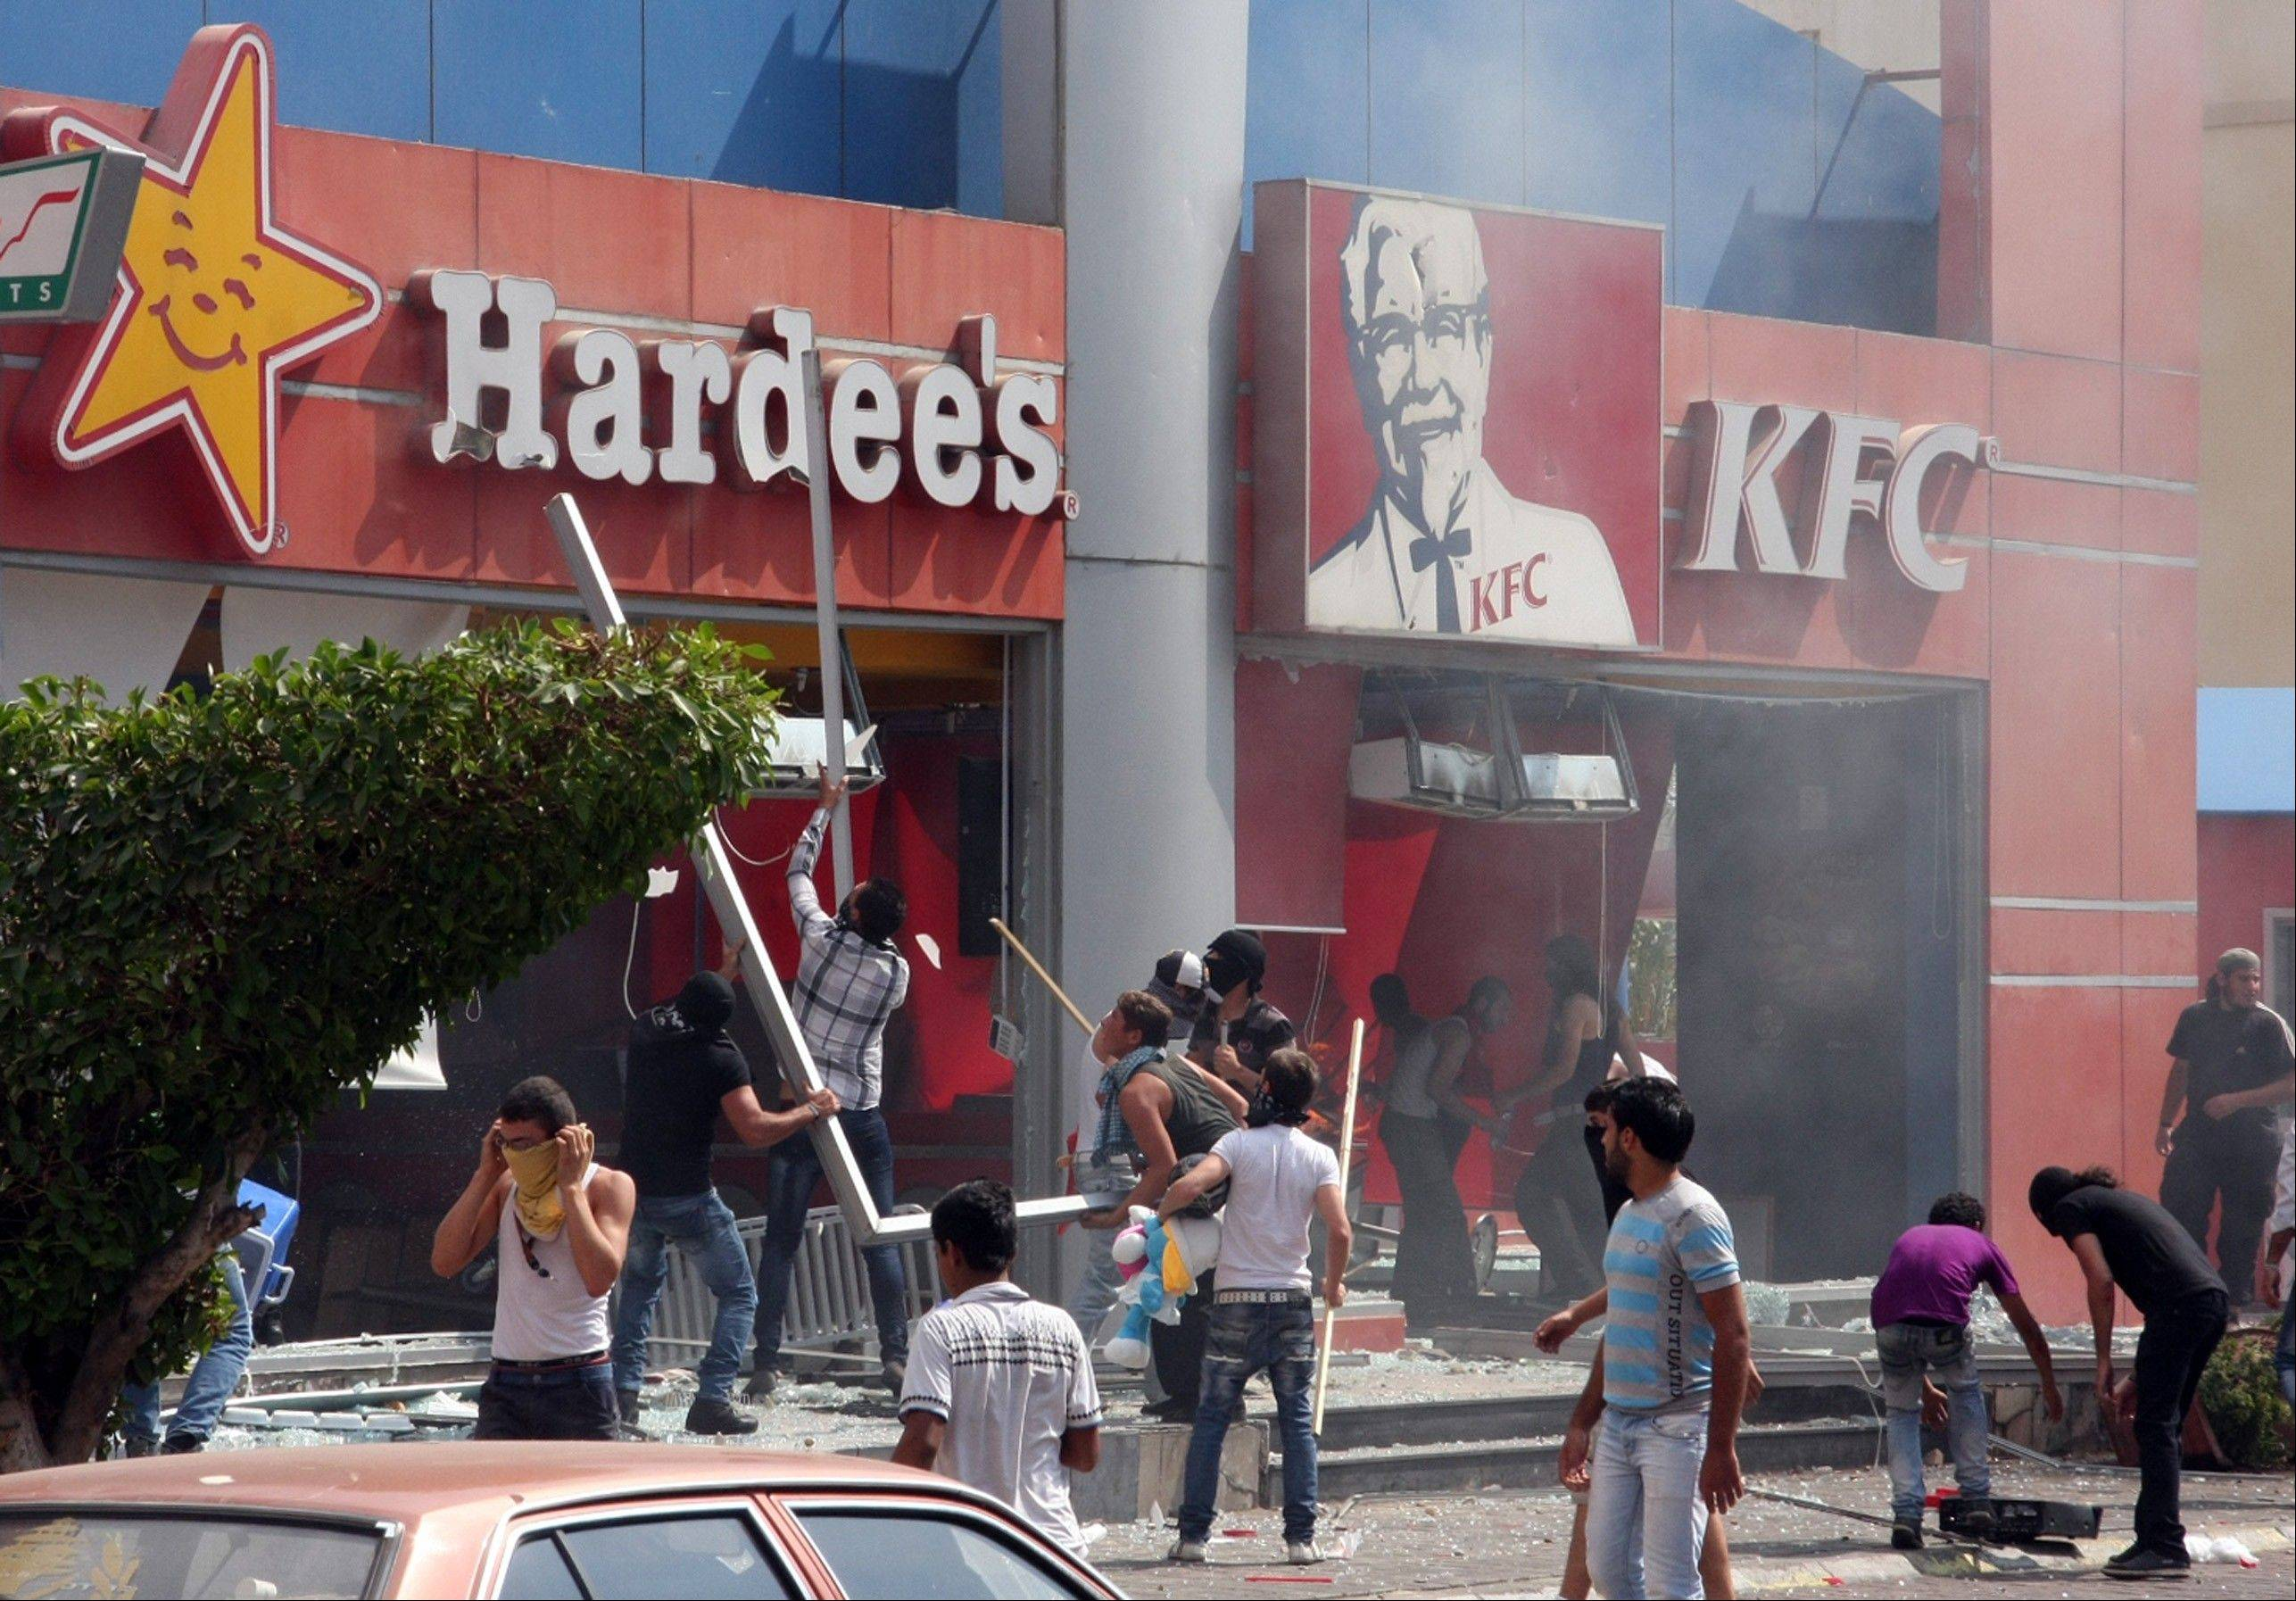 Lebanese protesters attack American fast food restaurants after Friday prayers in the northeastern city of Tripoli, Lebanon, Friday, Sept. 14, 2012. According to security officials no one was hurt in the attack which is part of widespread anger across the Muslim world about a film ridiculing Islam's Prophet Muhammad.